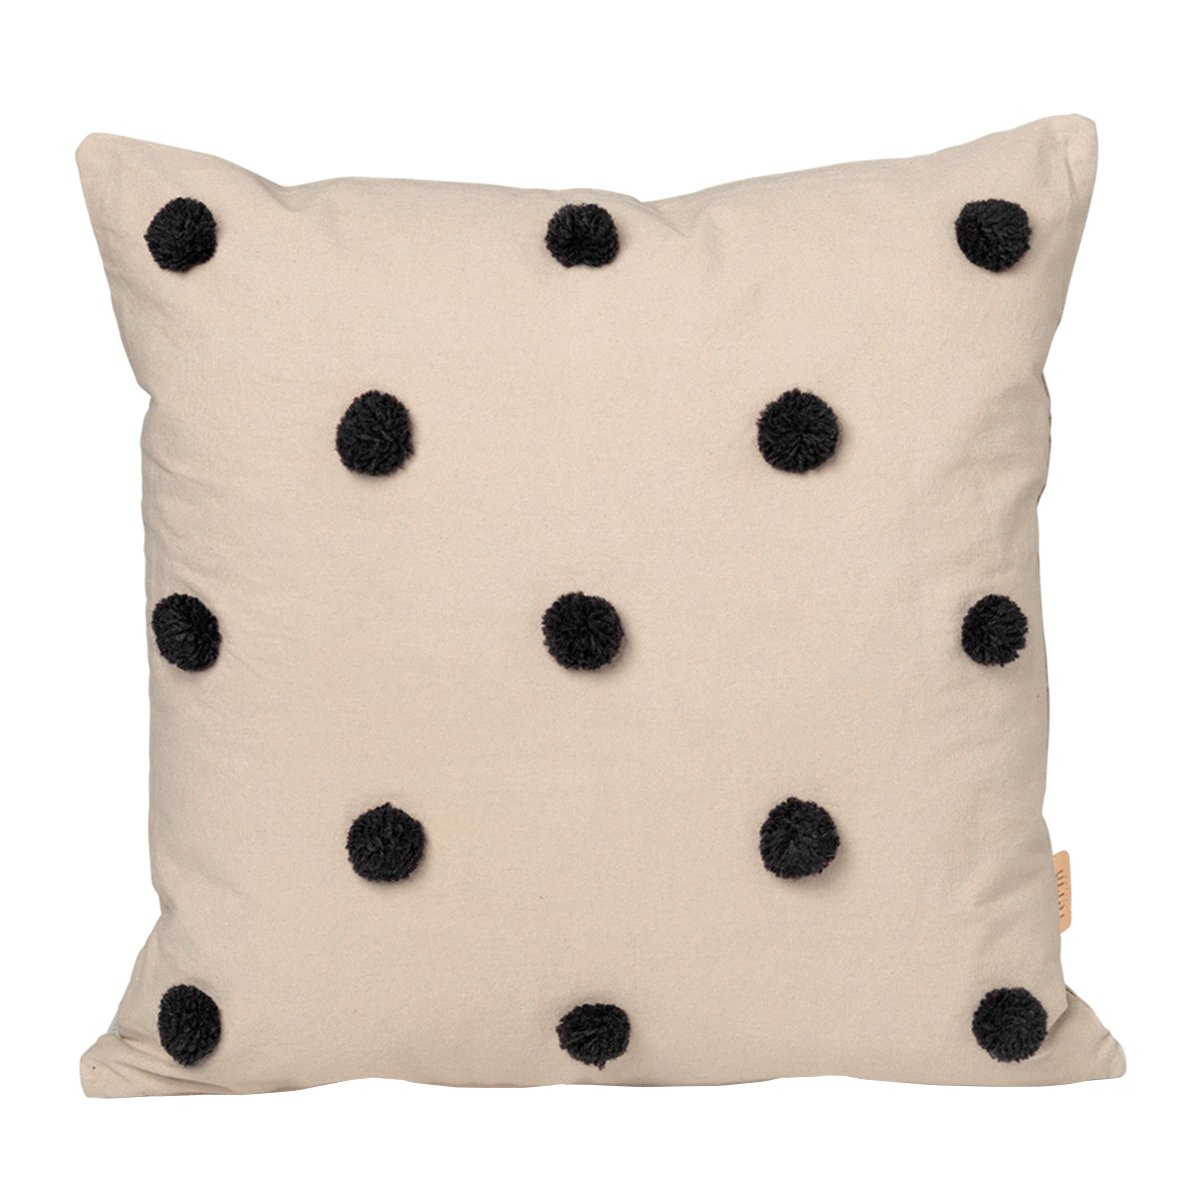 Ferm Living Dot Tufted Kussen - Sand/Black